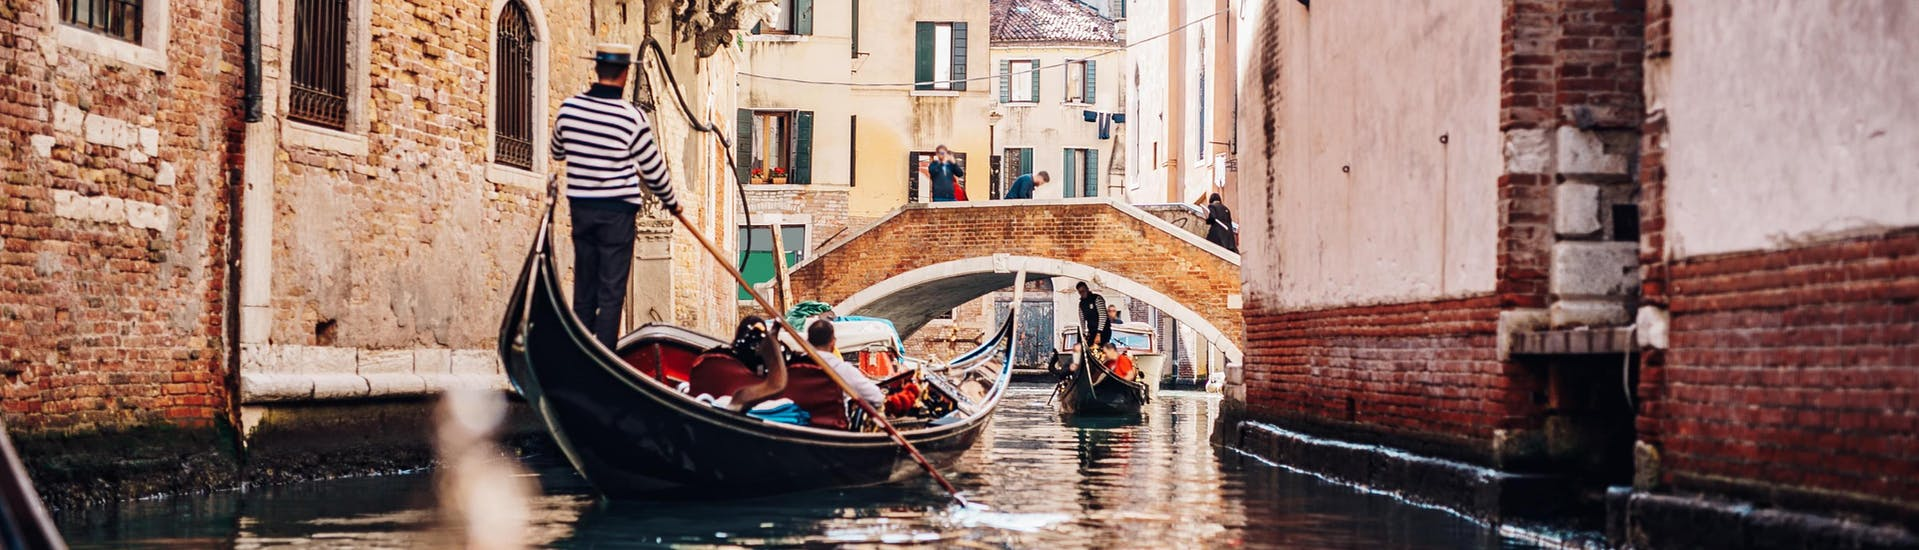 A gondoliere is paddling the boat through a narrow canal on a gondola ride in Venice.